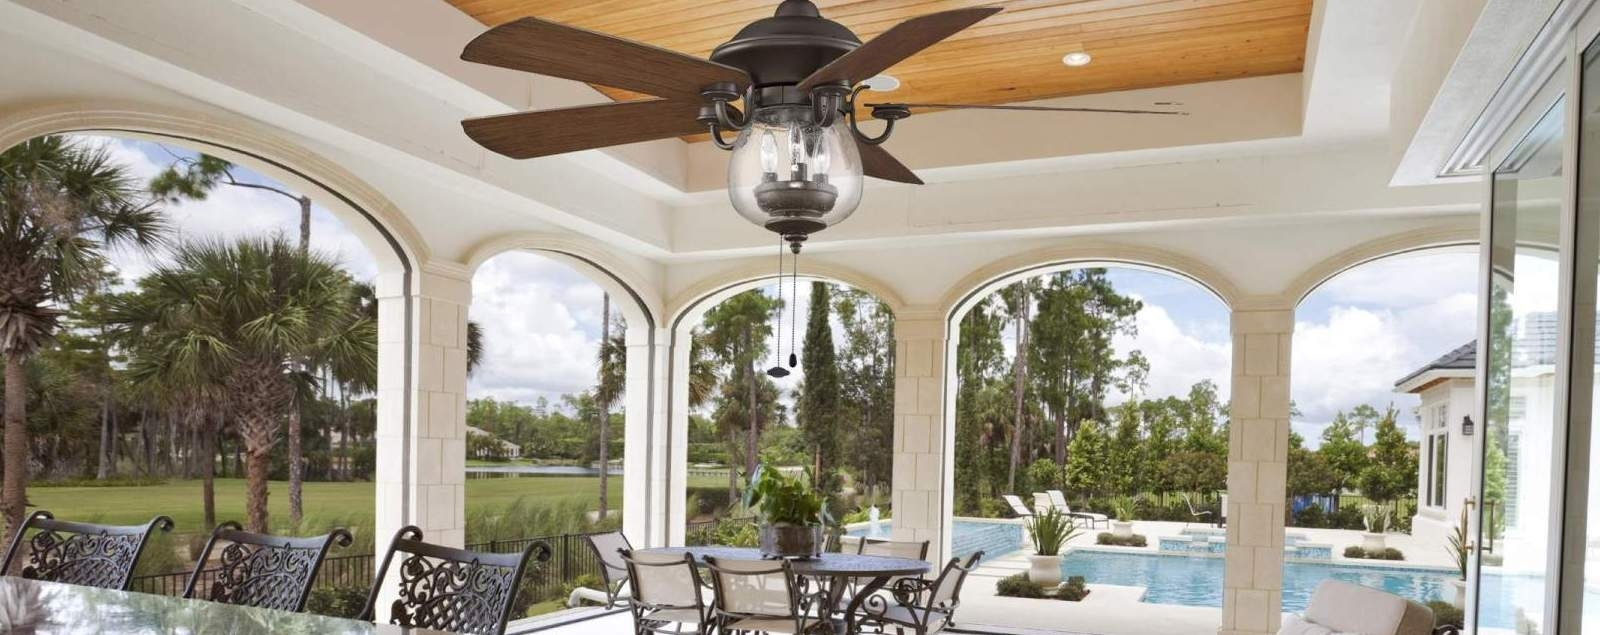 Outdoor Electric Ceiling Fans With Regard To Latest Outdoor Ceiling Fans – Shop Wet, Dry, And Damp Rated Outdoor Fans (View 8 of 20)